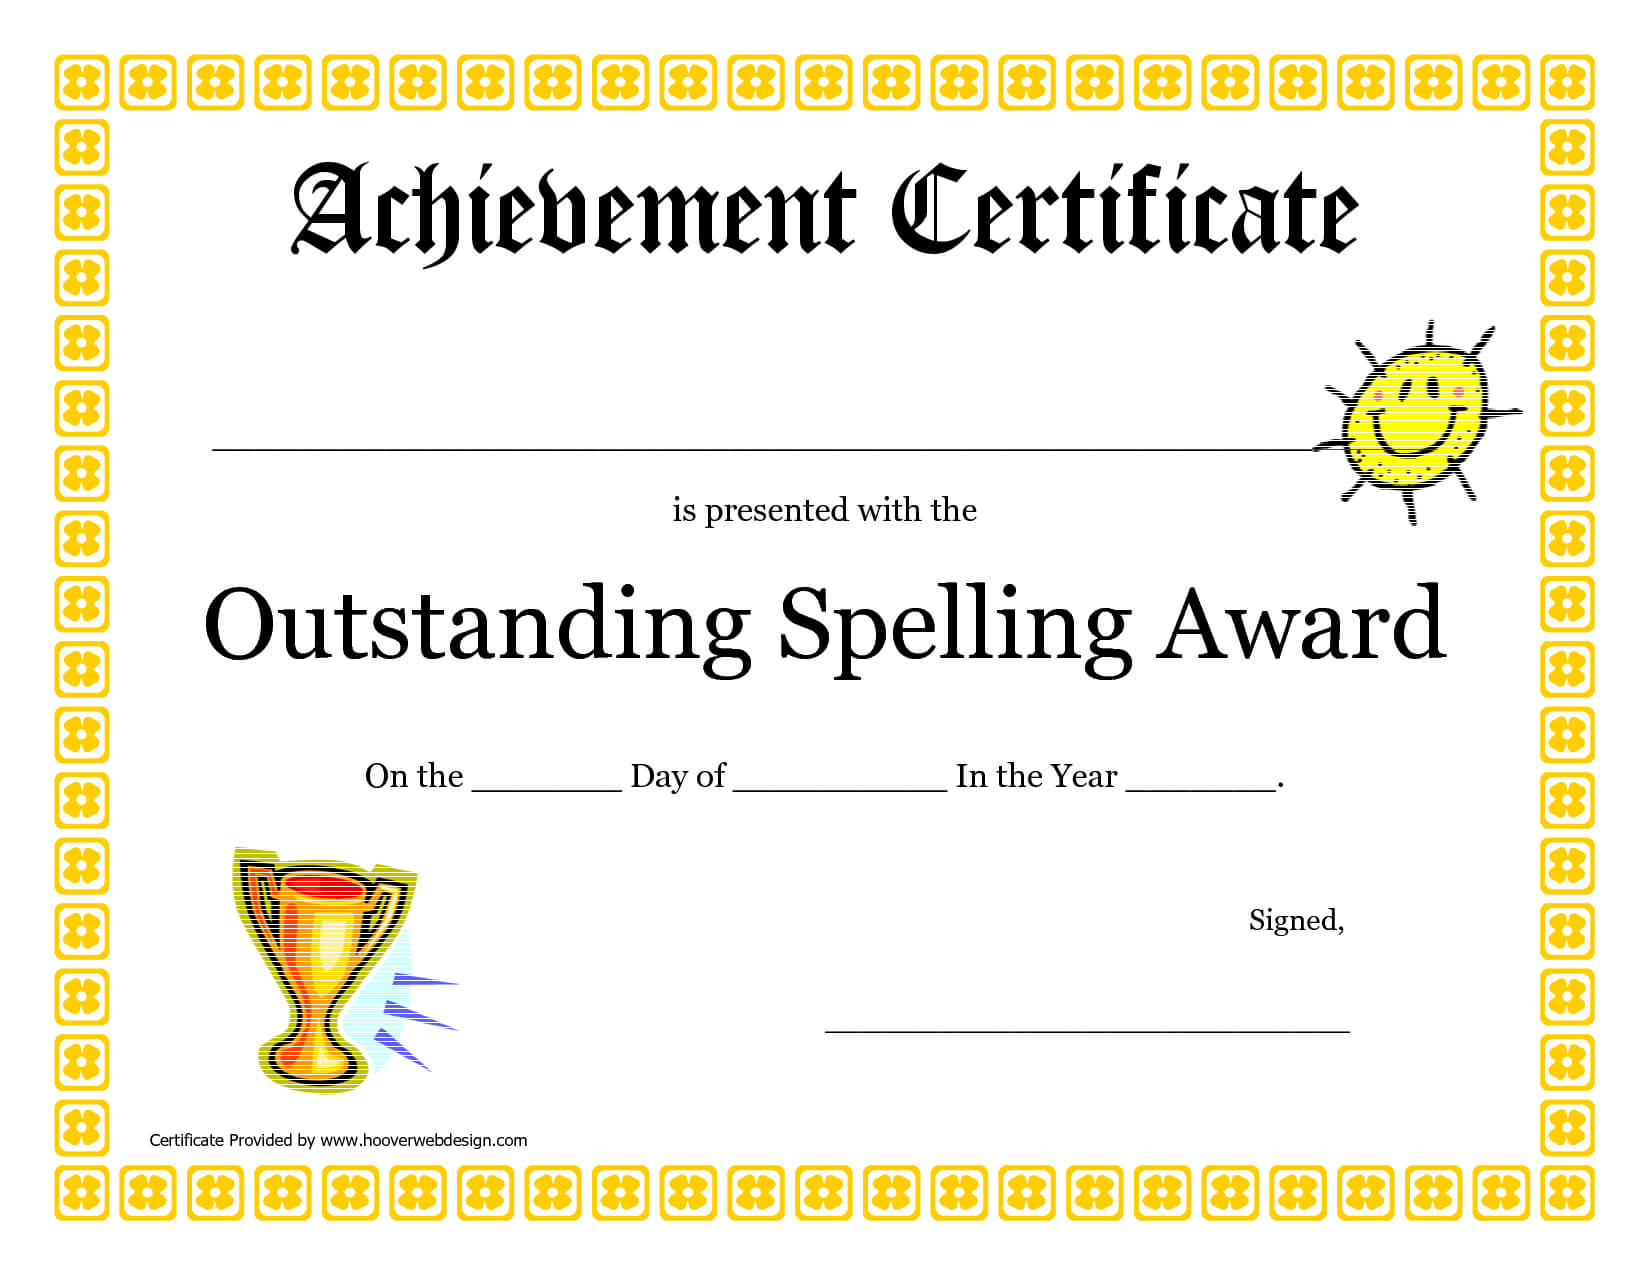 Outstanding Spelling Award Printable Certificate Pdf Picture Throughout Spelling Bee Award Certificate Template